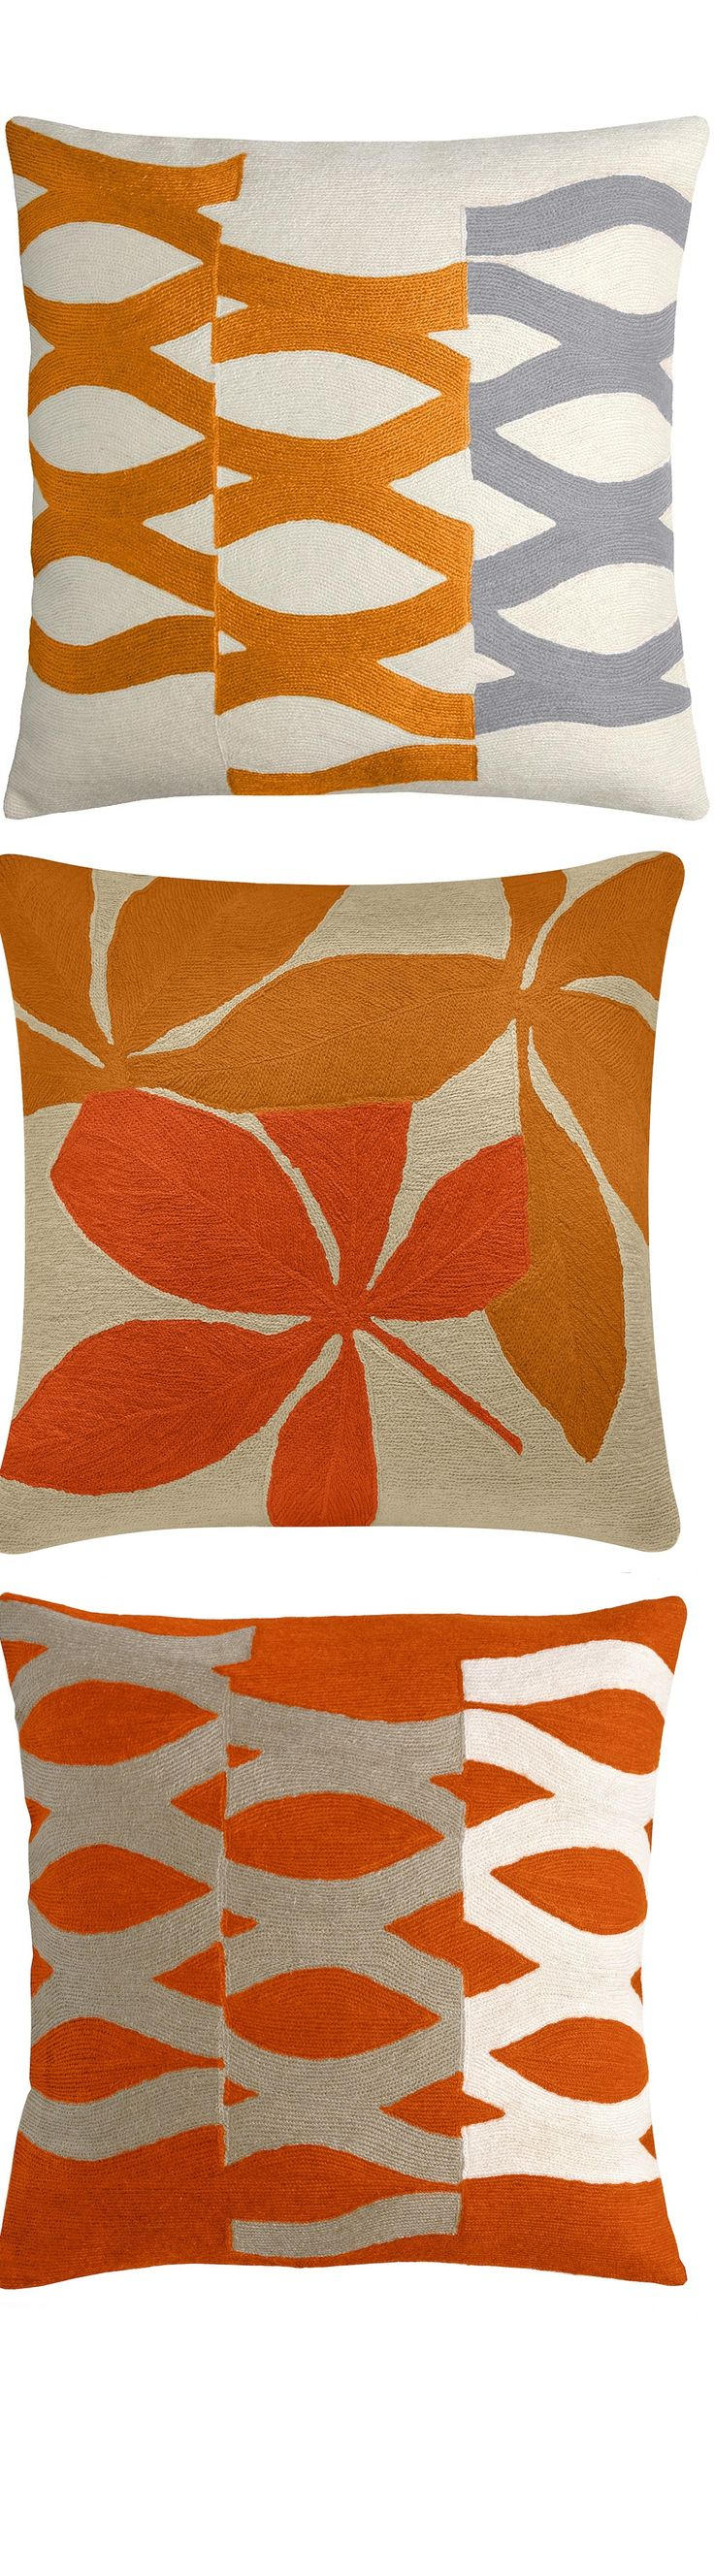 Orange Pillows For Sofa Best 25 Orange Throw Pillows Ideas Only On Pinterest - TheSofa